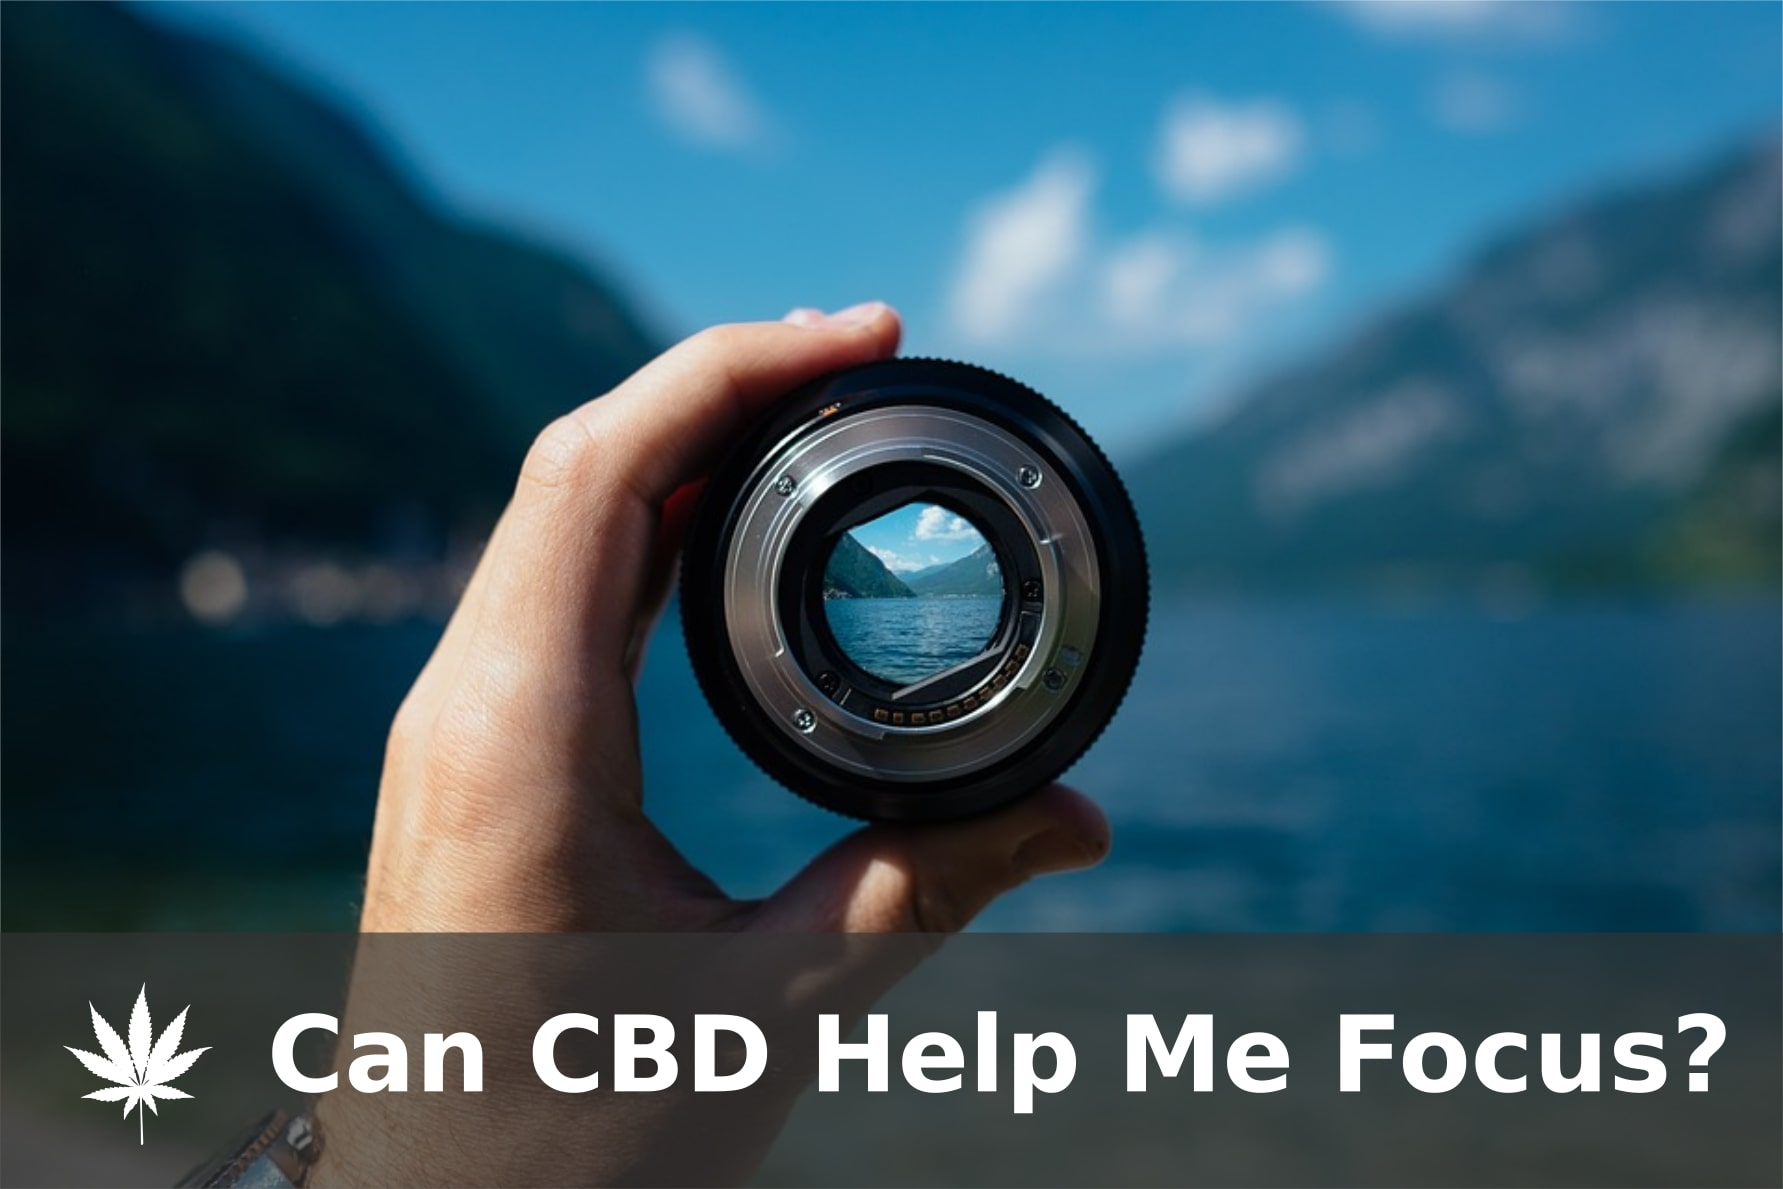 Can CBD Help Me Focus?